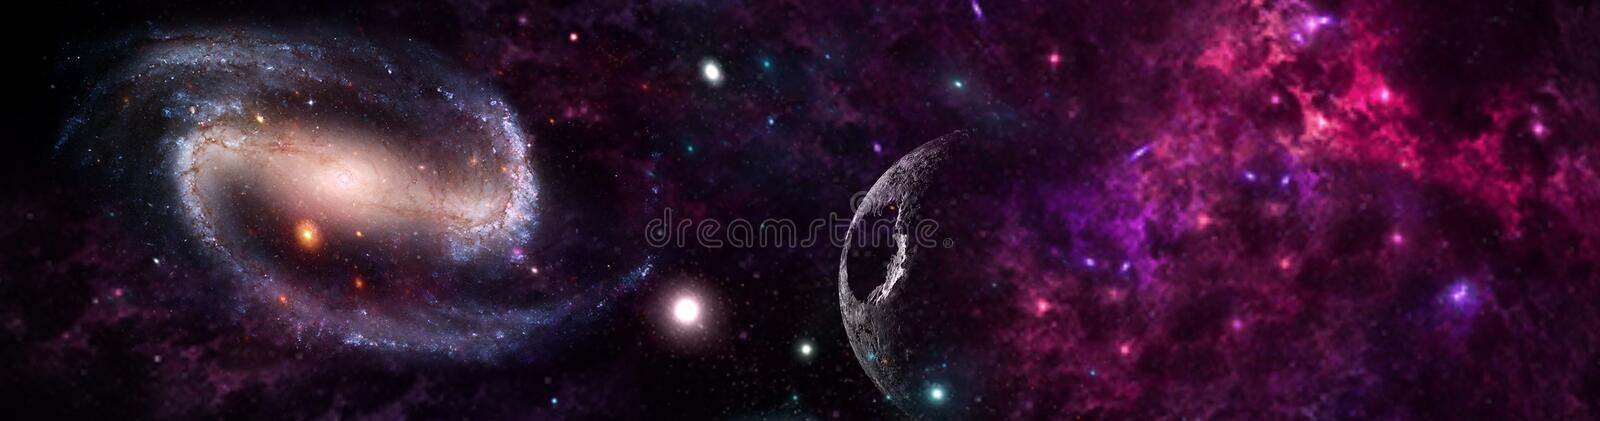 Planets and galaxy, science fiction wallpaper. stock images